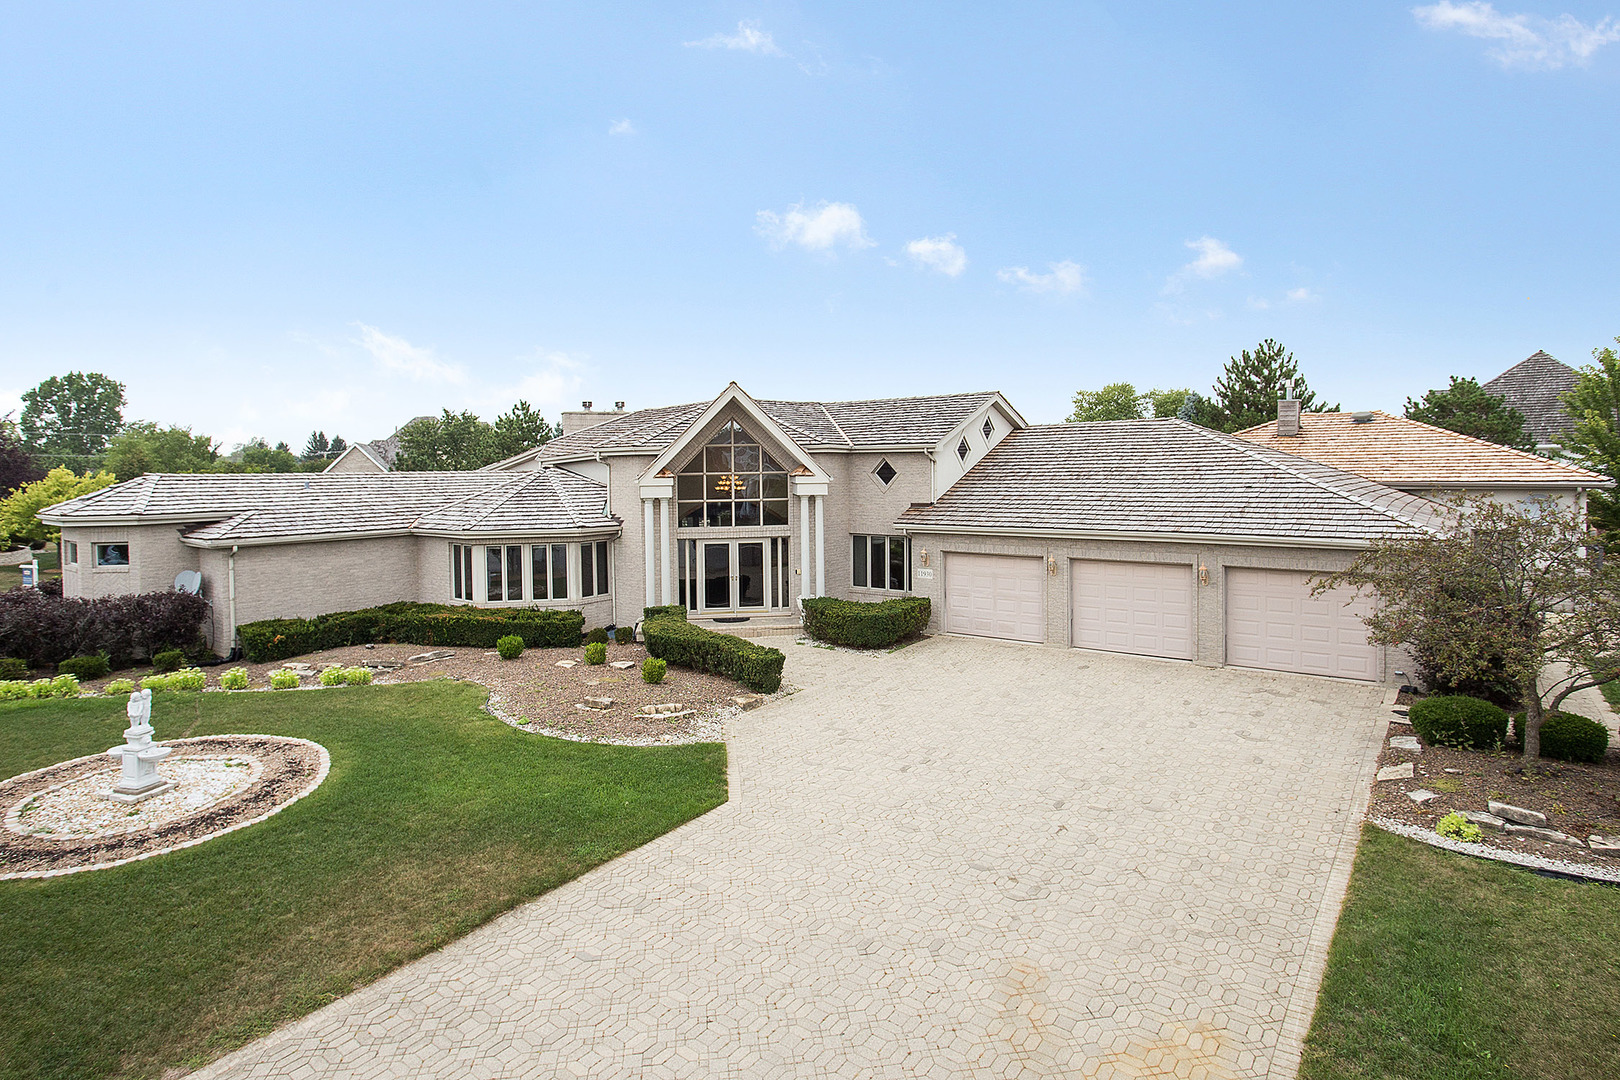 Property for sale at 11930 Pine Grove Court, ORLAND PARK,  Il 60467